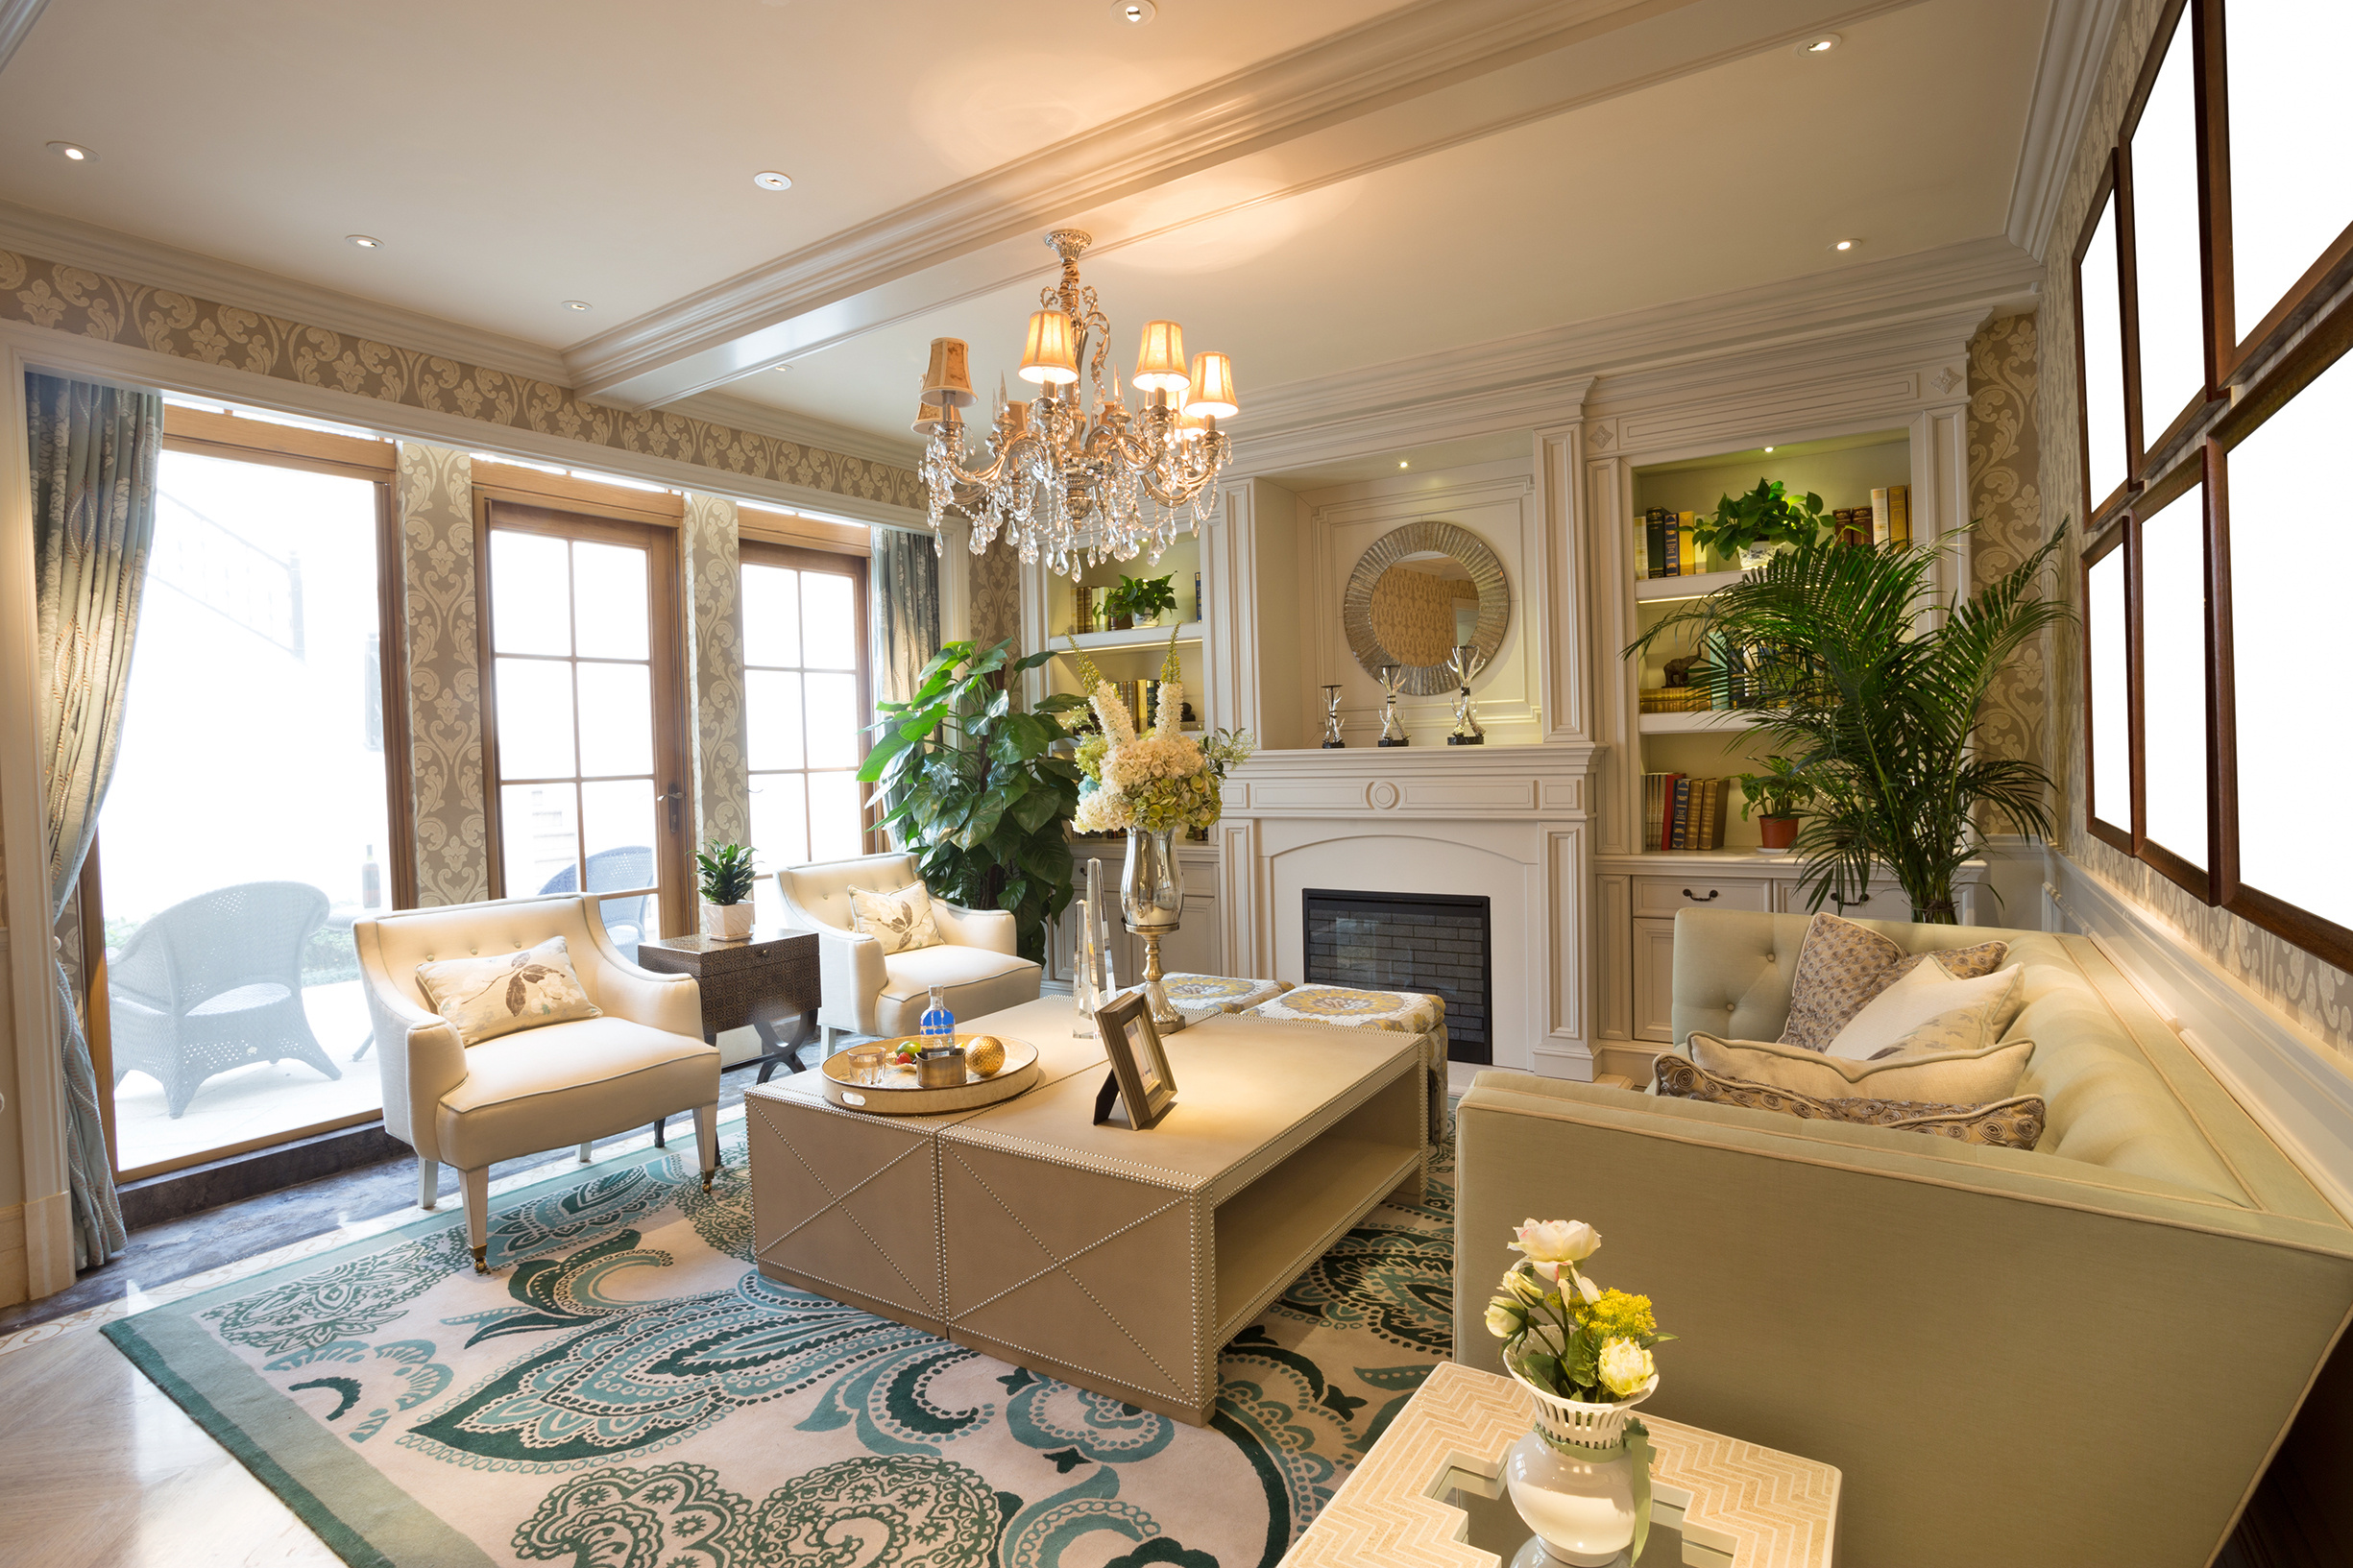 Home Remodeling In The Bethesda Maryland Area